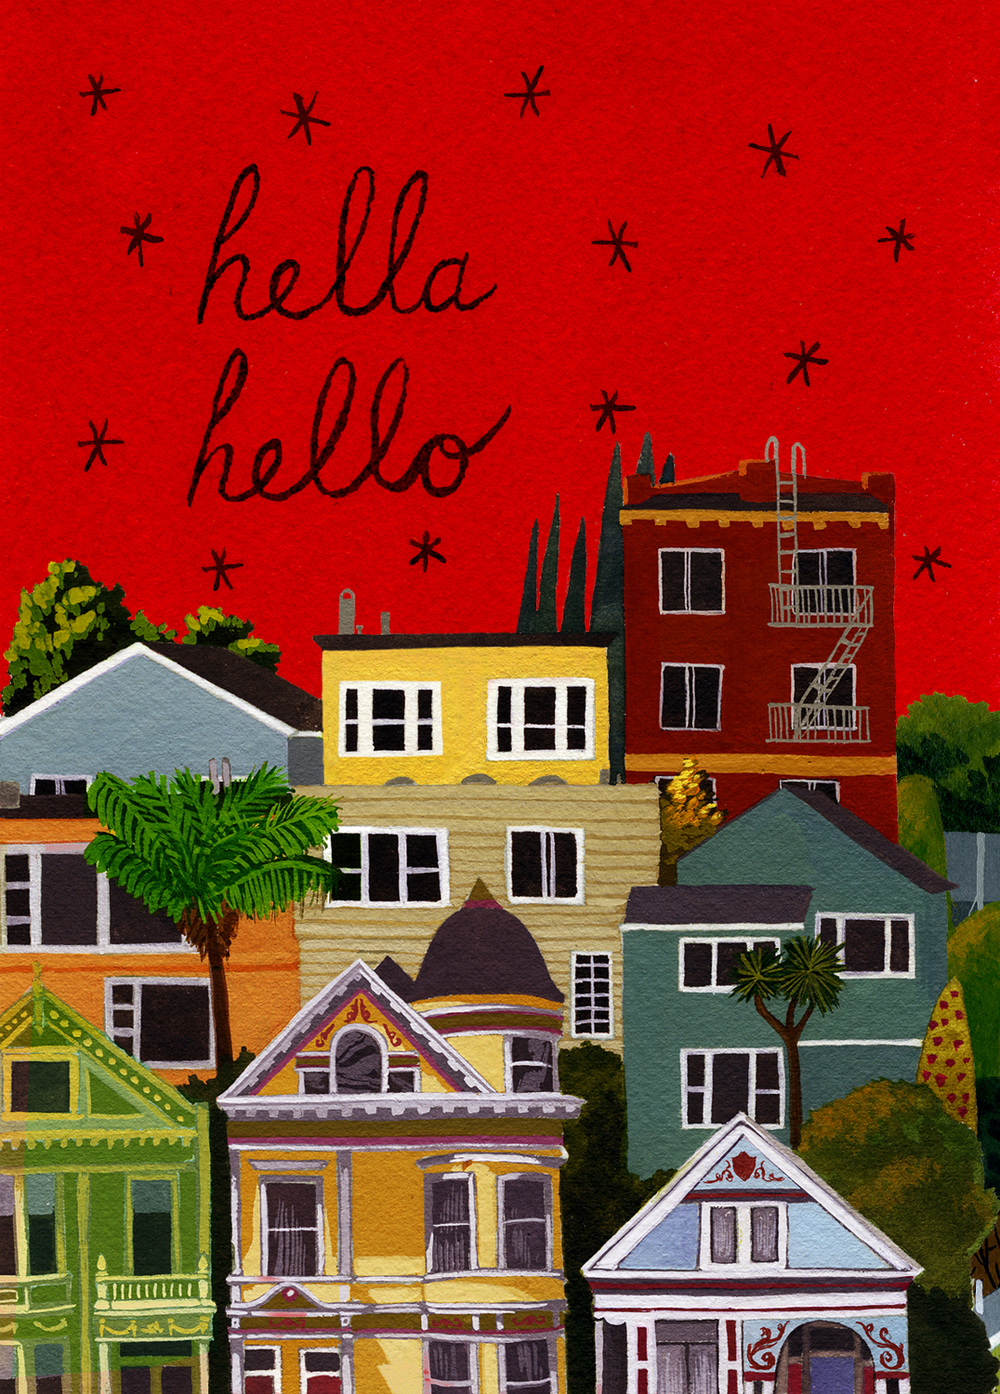 Hella Hello Postcards